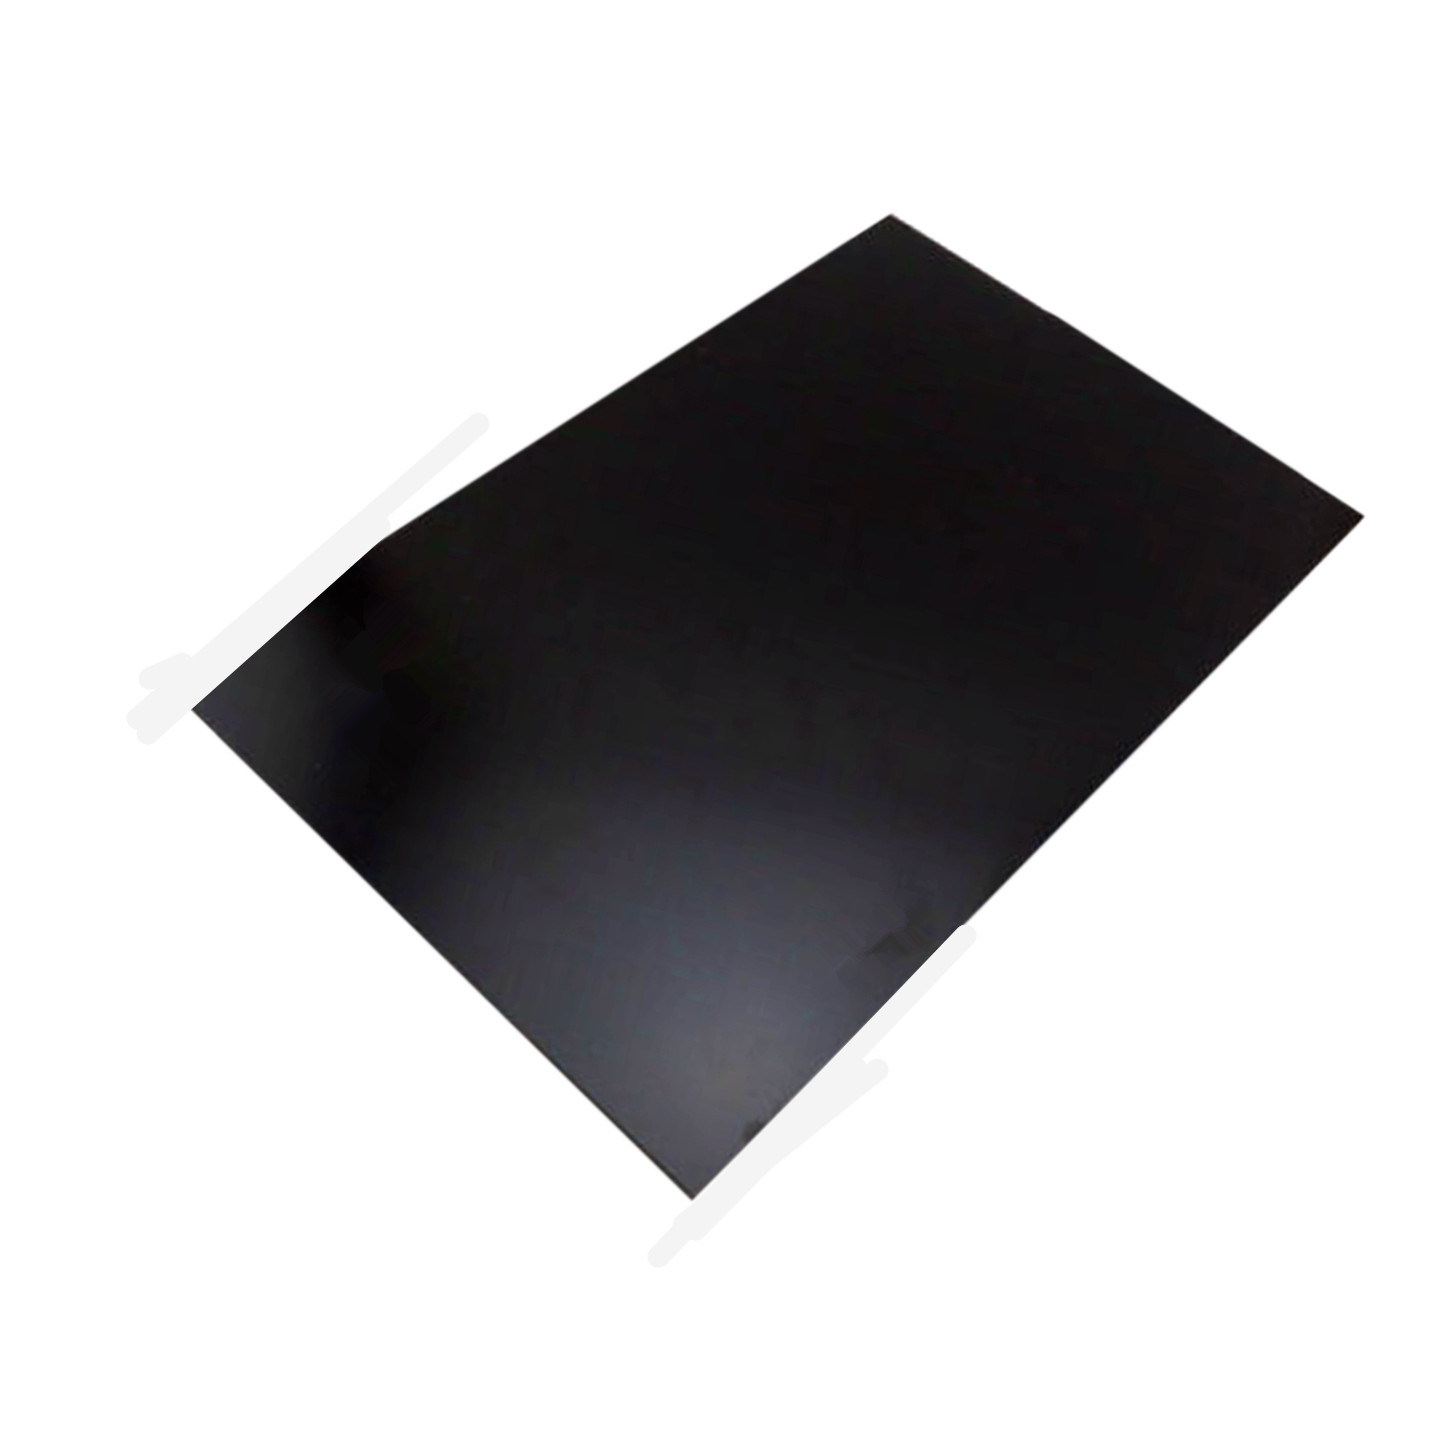 1Pc Durable Black ABS Styrene Flat Sheet Insulating Plastic Plate 0.5mm Thickness For Food Refrigeration Industry Parts Mayitr